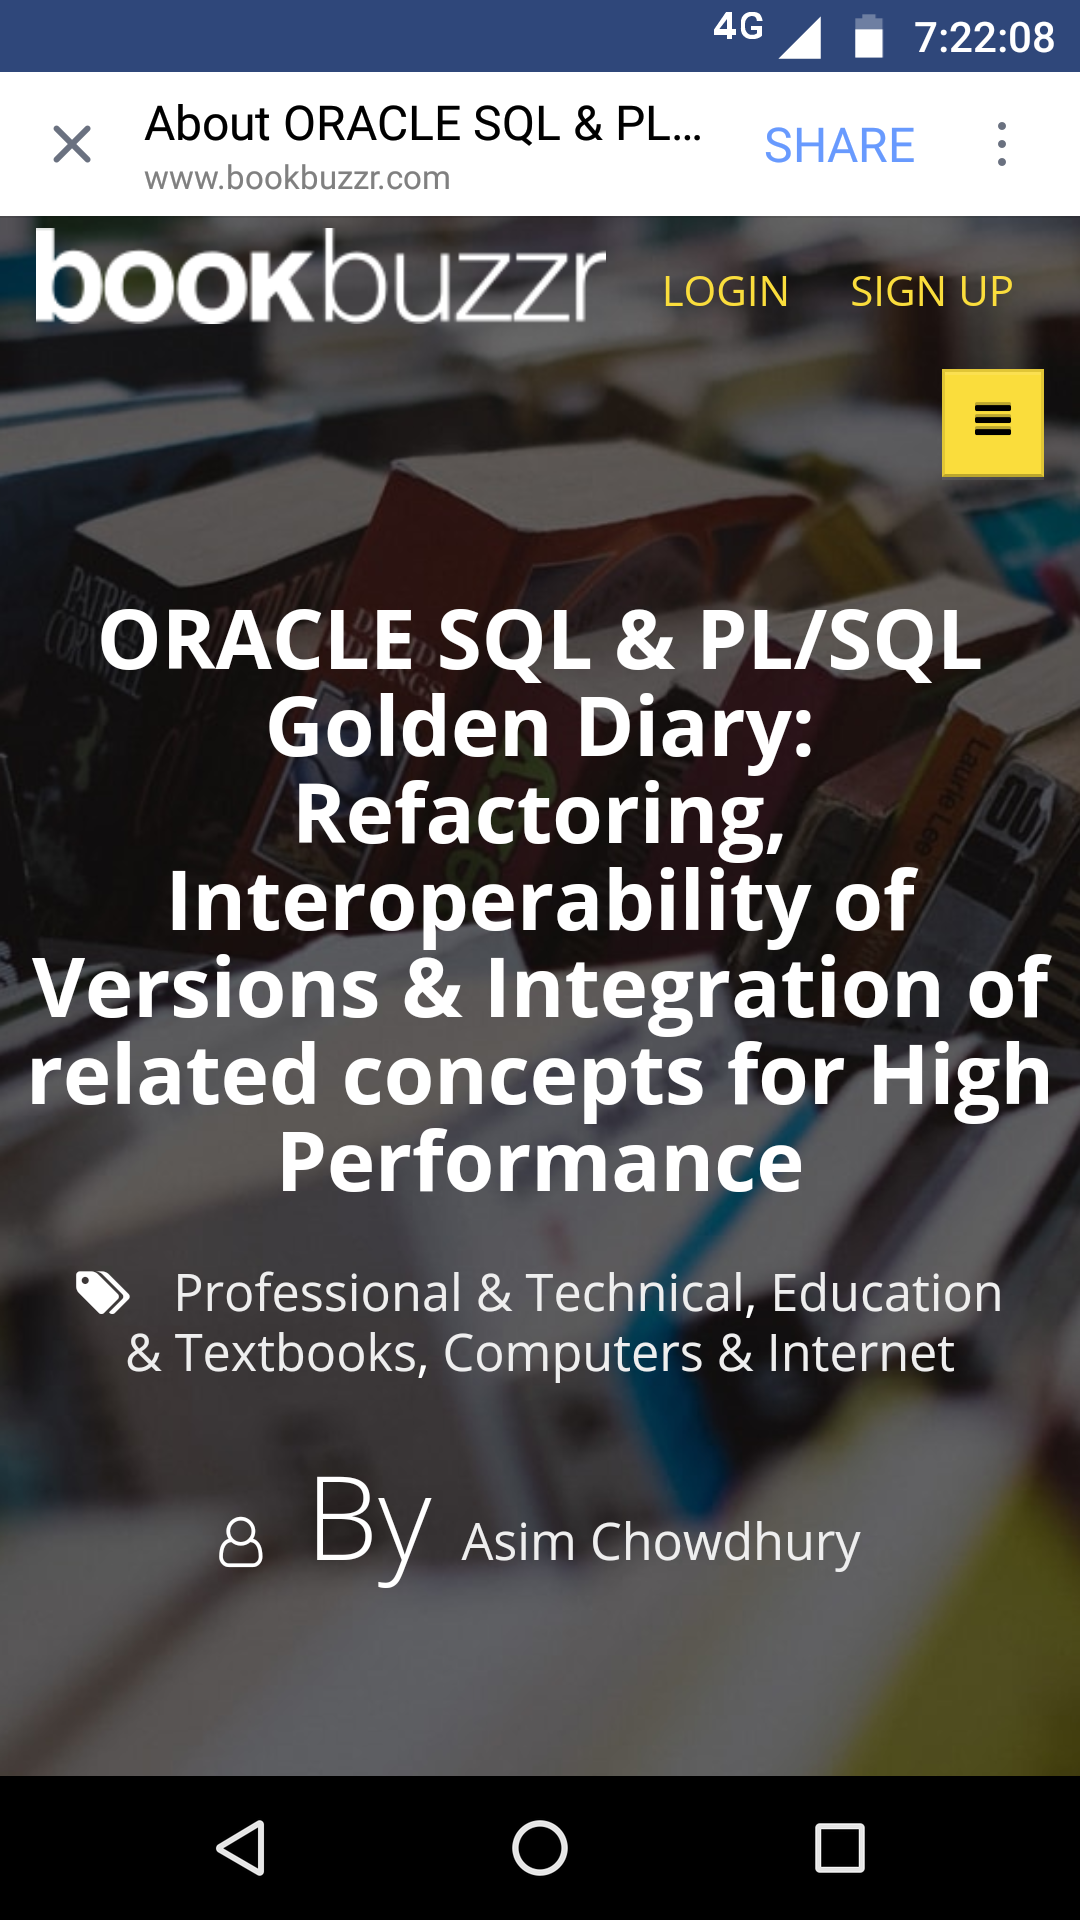 Oracle SQL & PL SQL Book for beginners and advanced also